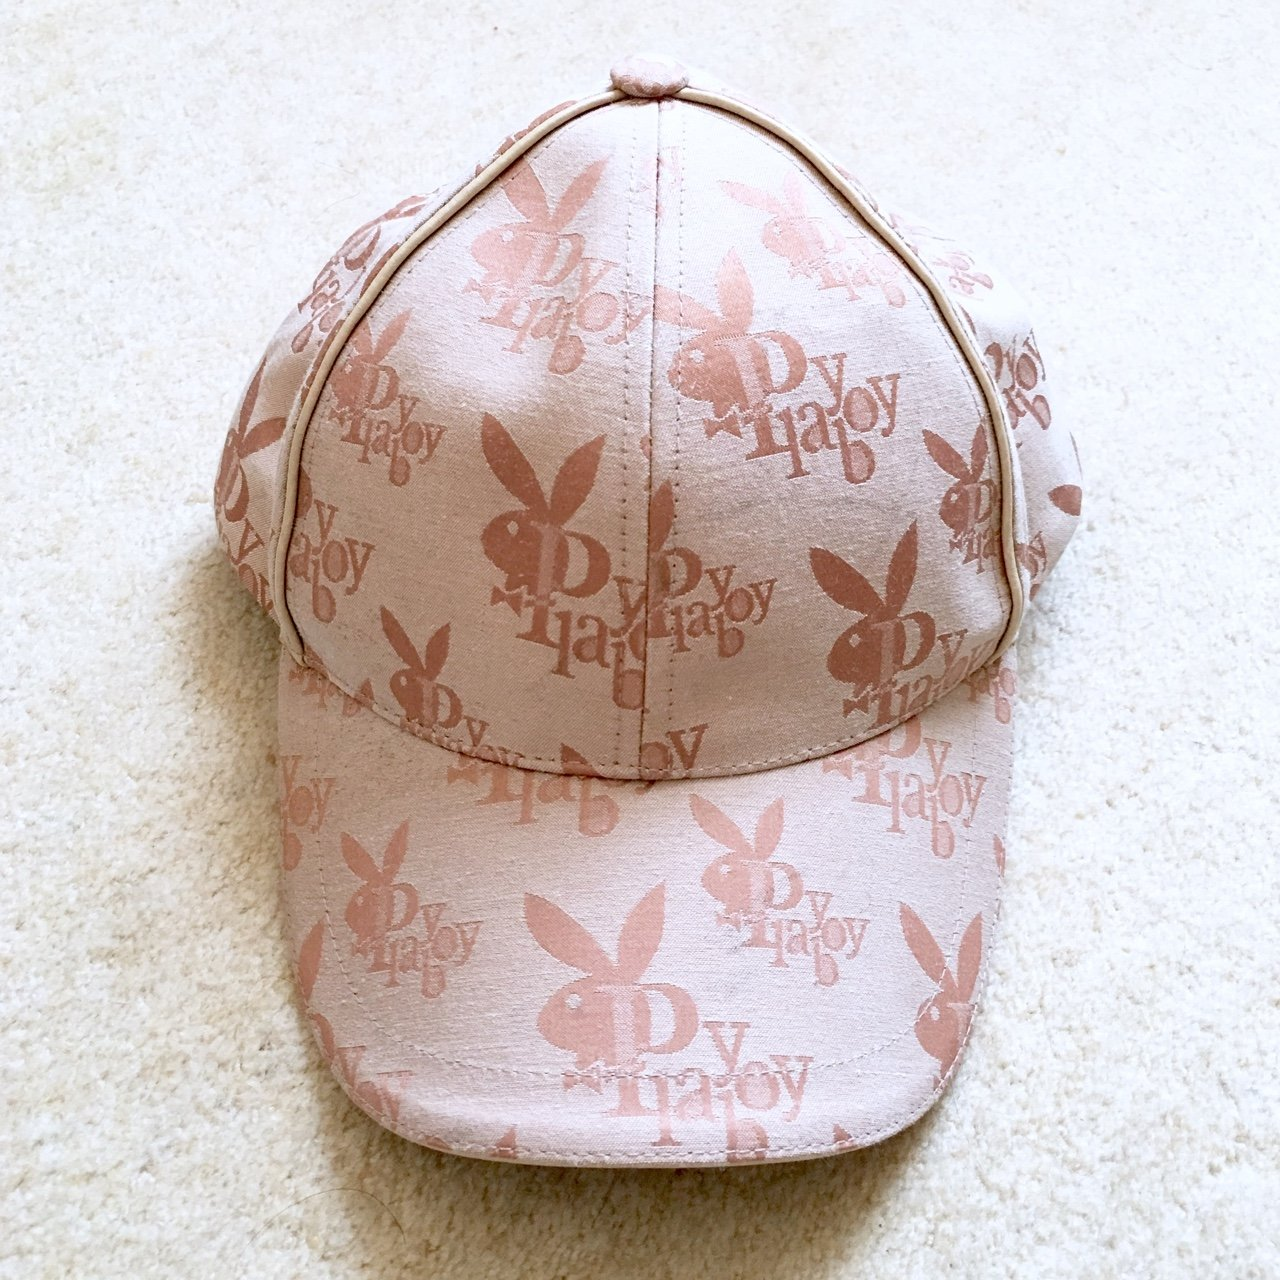 32a798628ba Peachy baby pink playboy hat. Well worn with light marks but - Depop